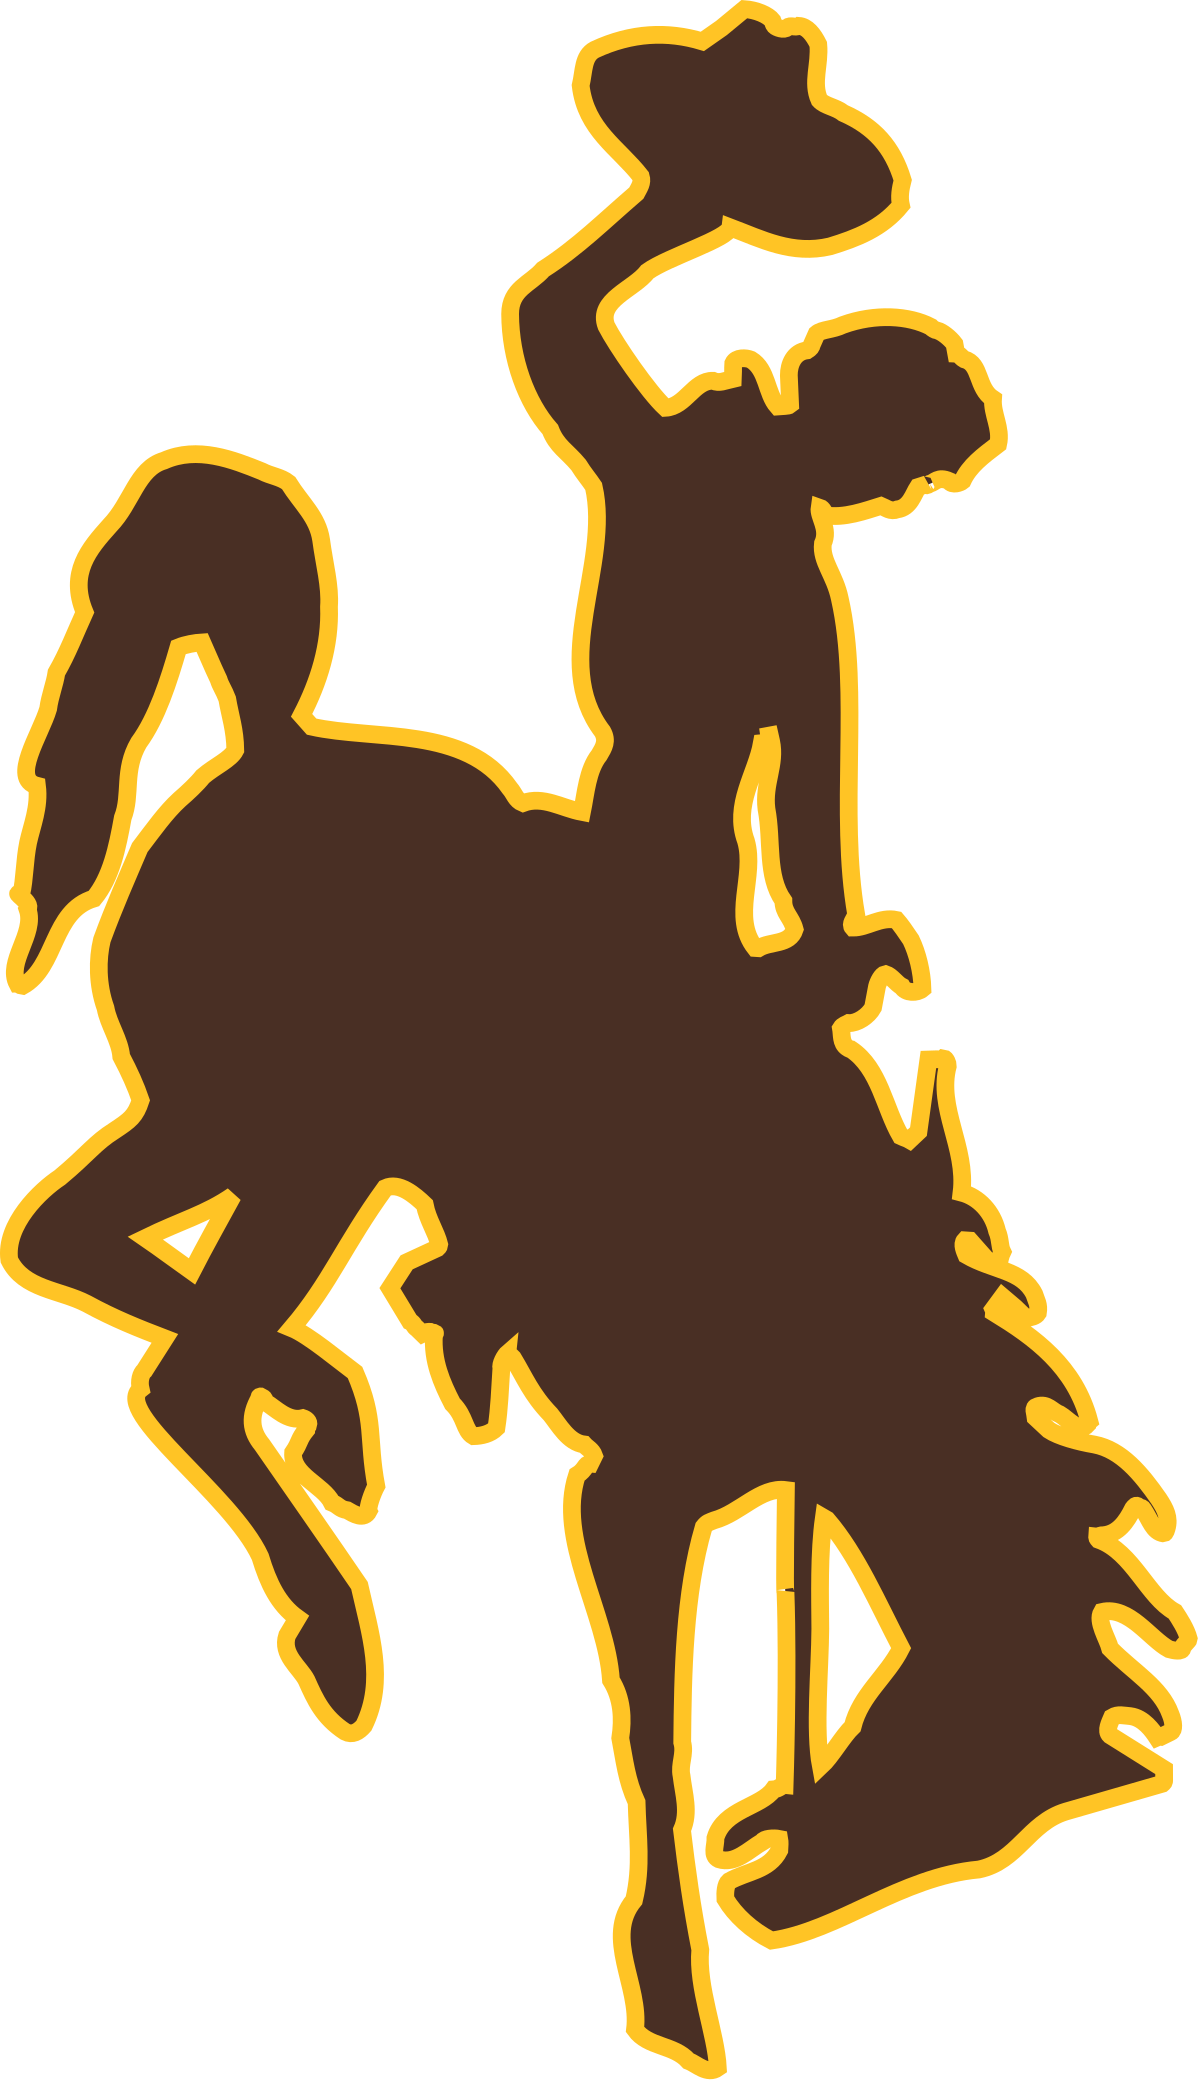 Wyoming clipart #11, Download drawings